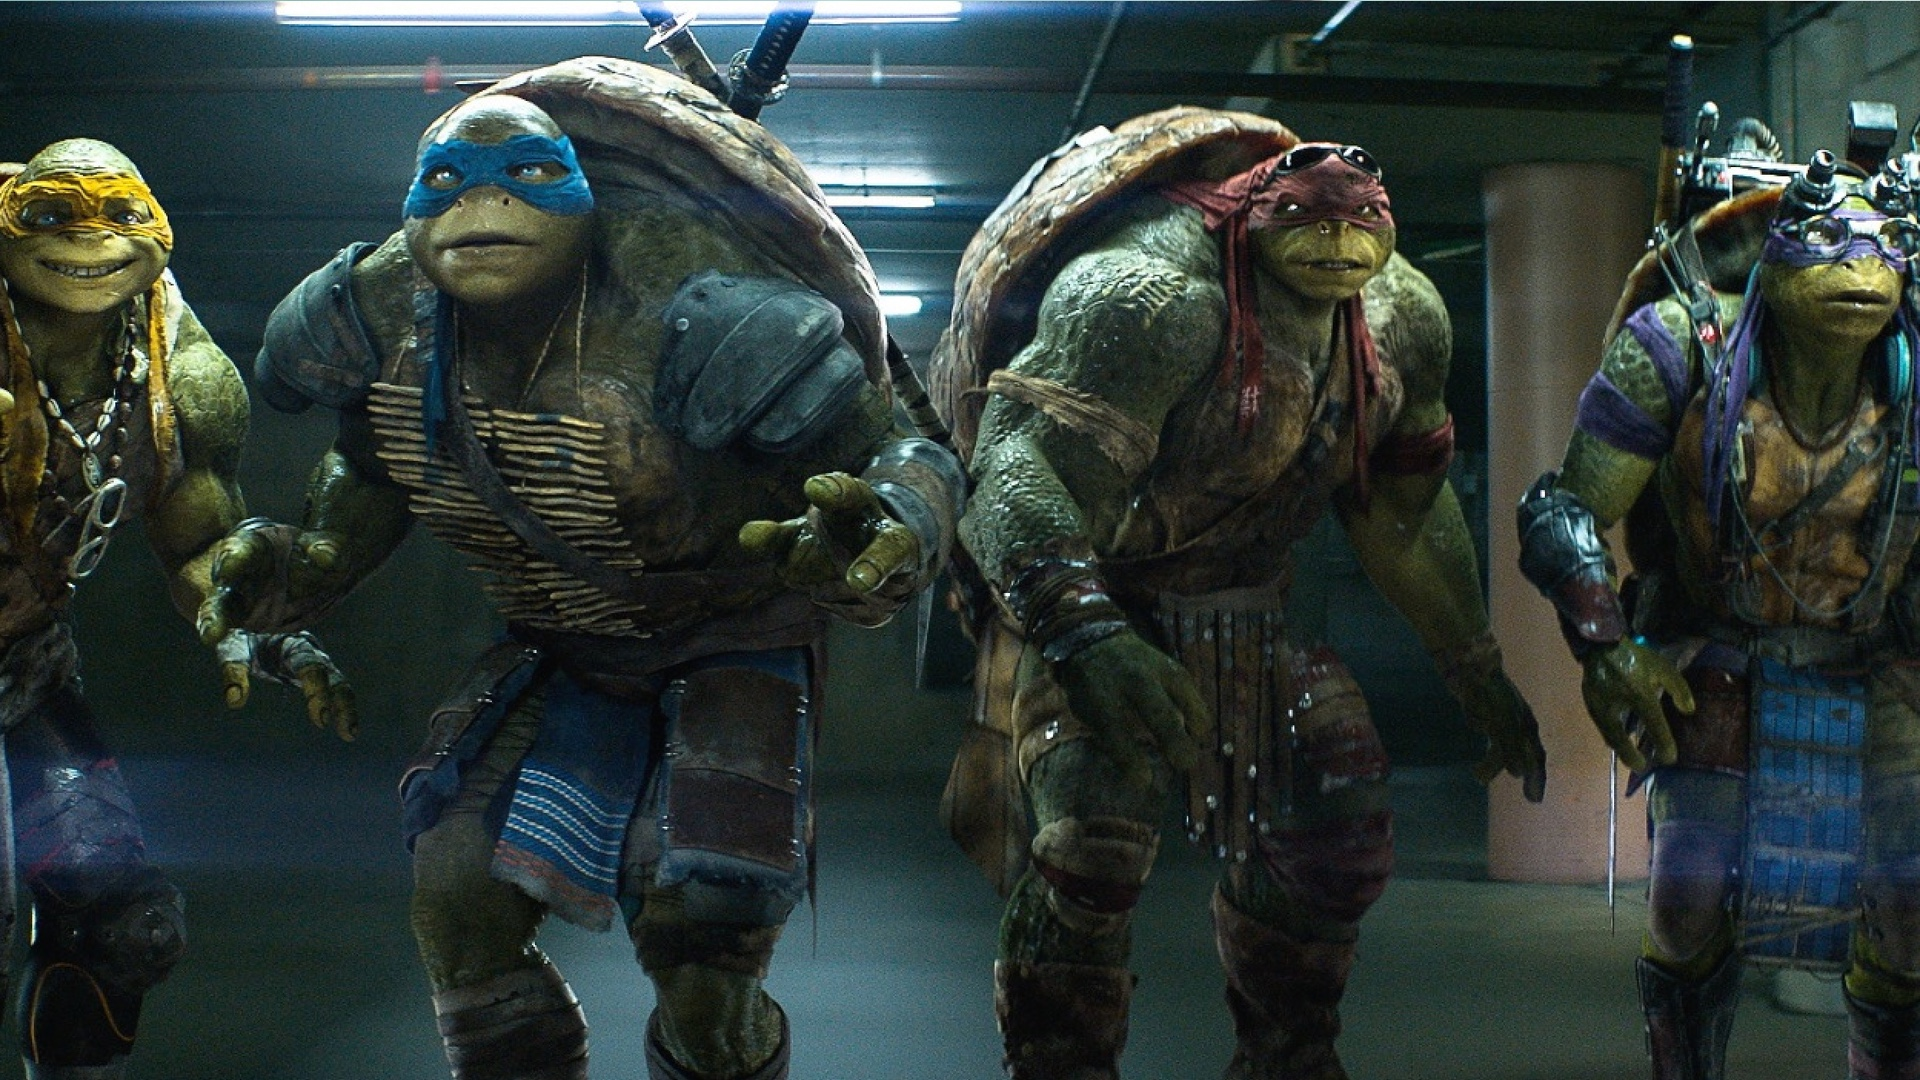 There S Another Teenage Mutant Ninja Turtles Movie In The Works And It Will Be Next Level Type Stuff Geektyrant